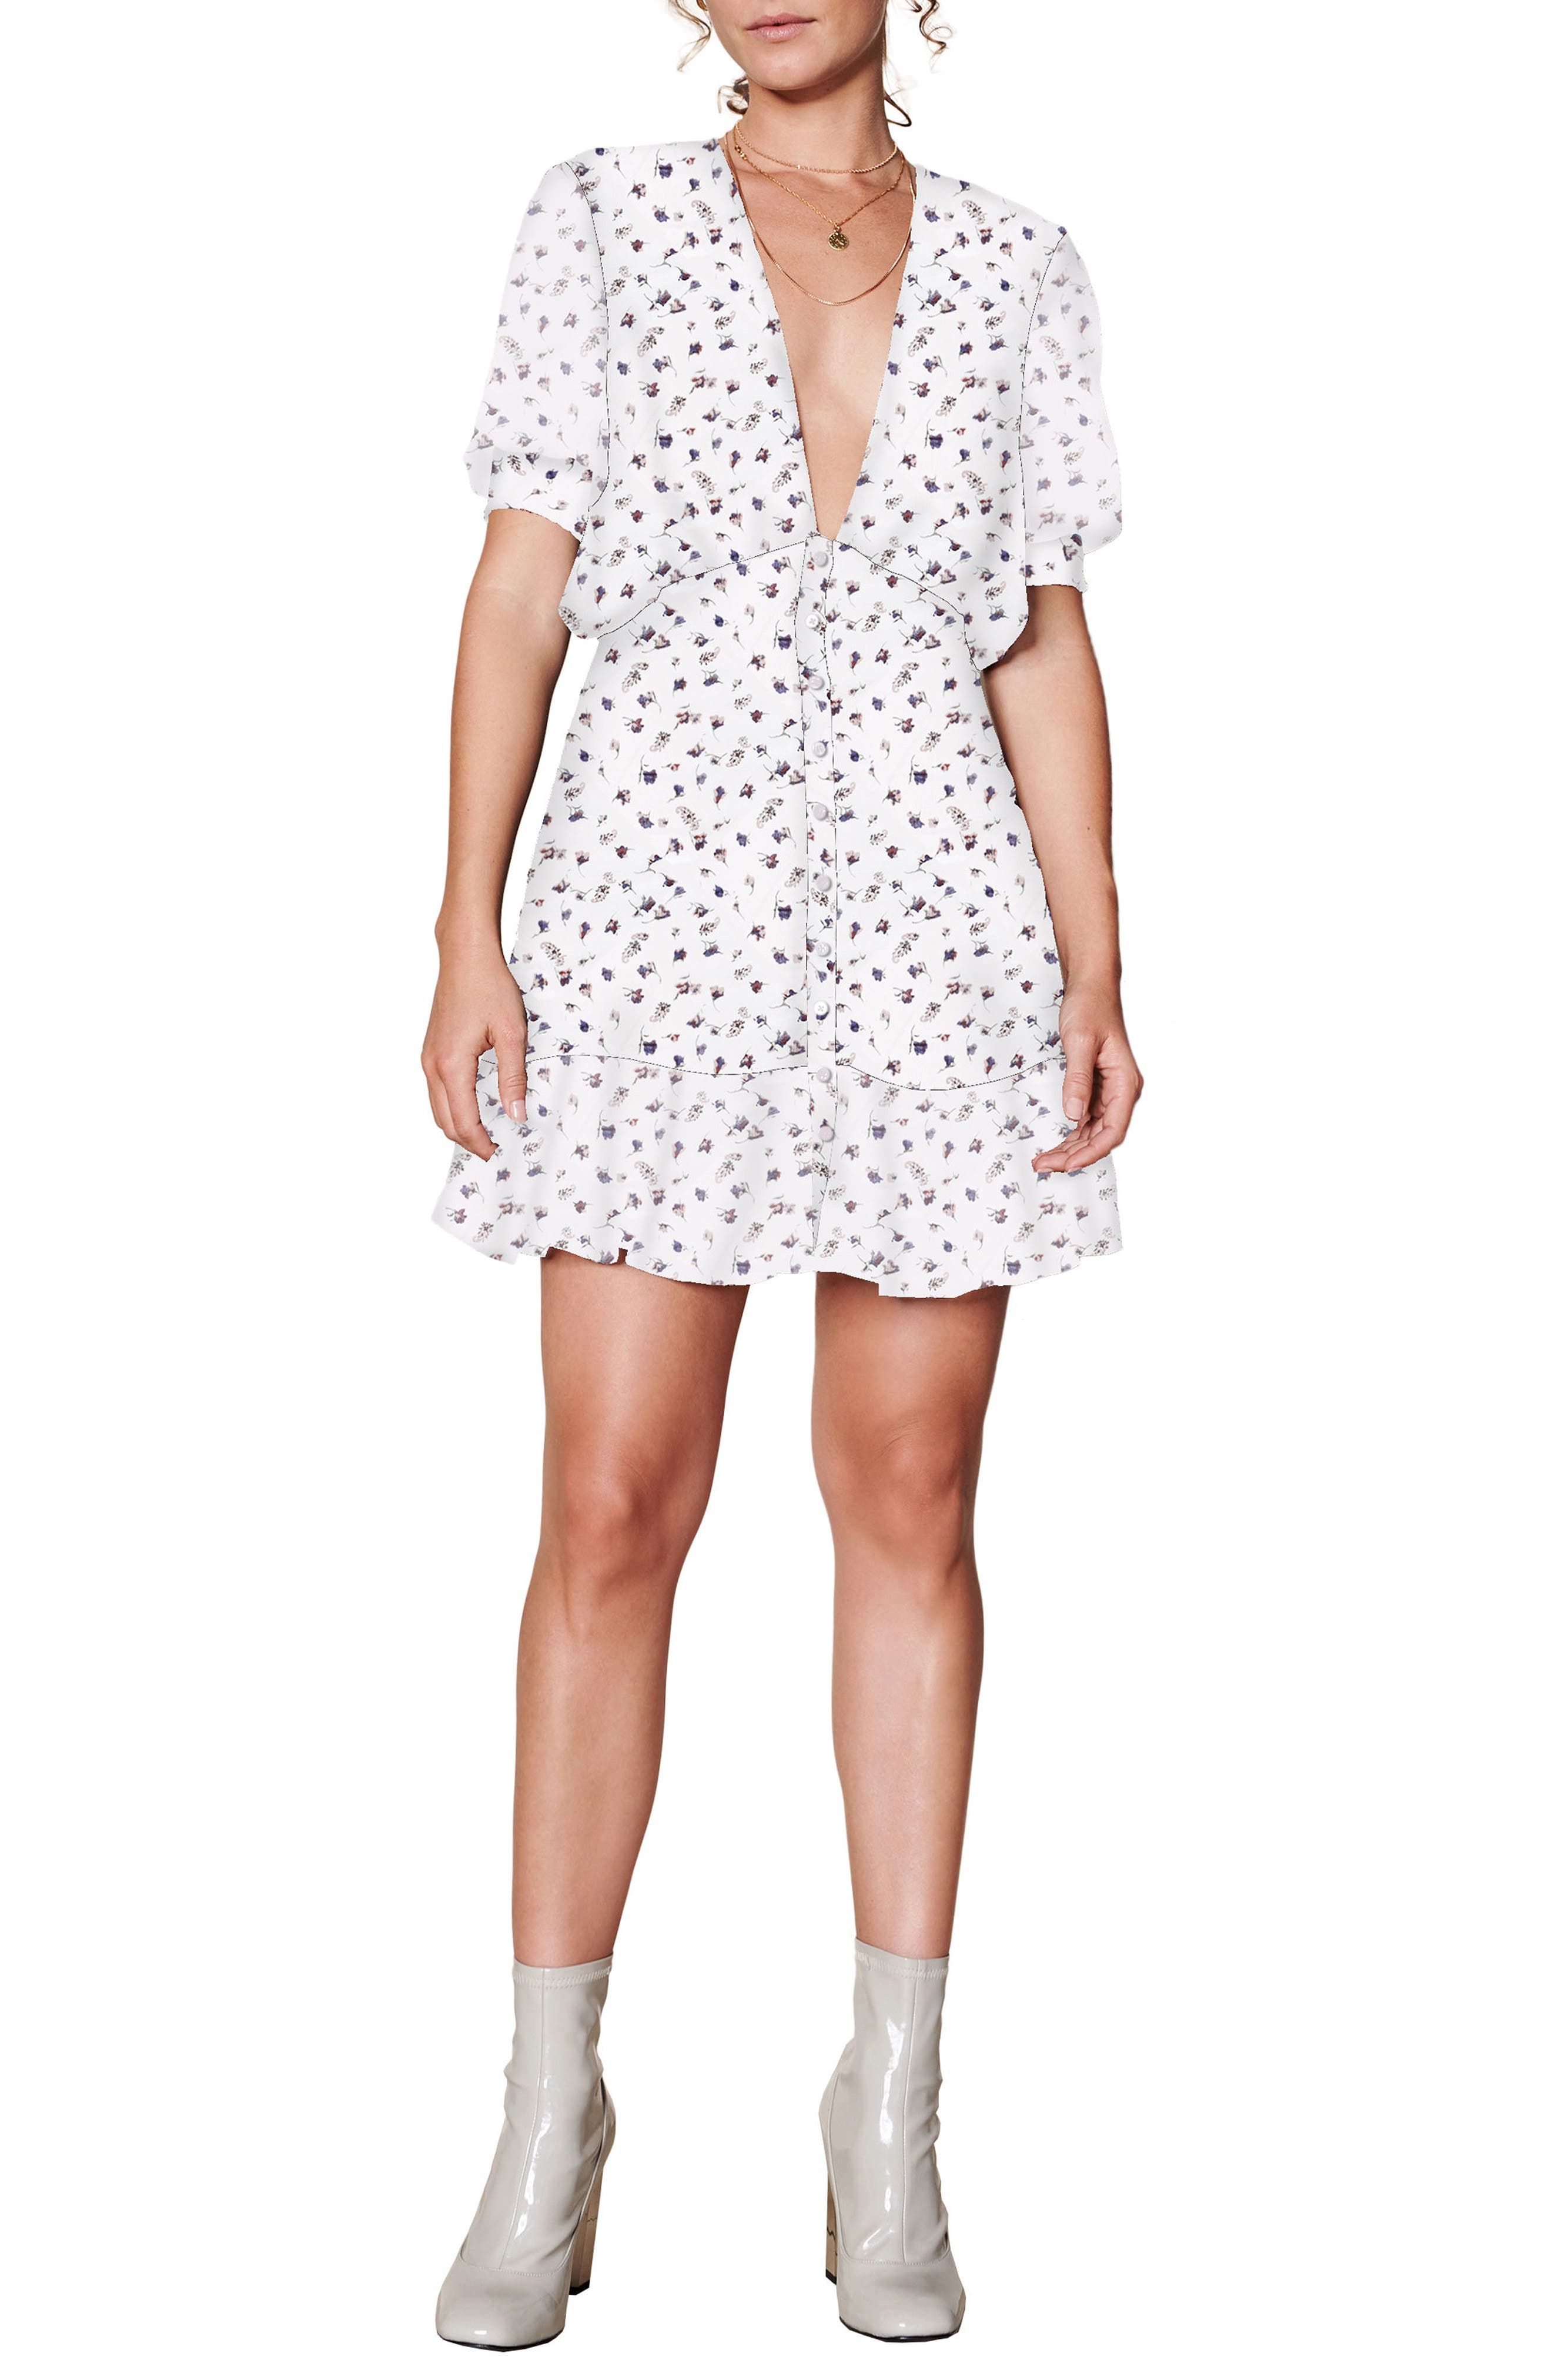 Mabel Minidress,                             Main thumbnail 1, color,                             WHITE BASE FLORAL PRINT